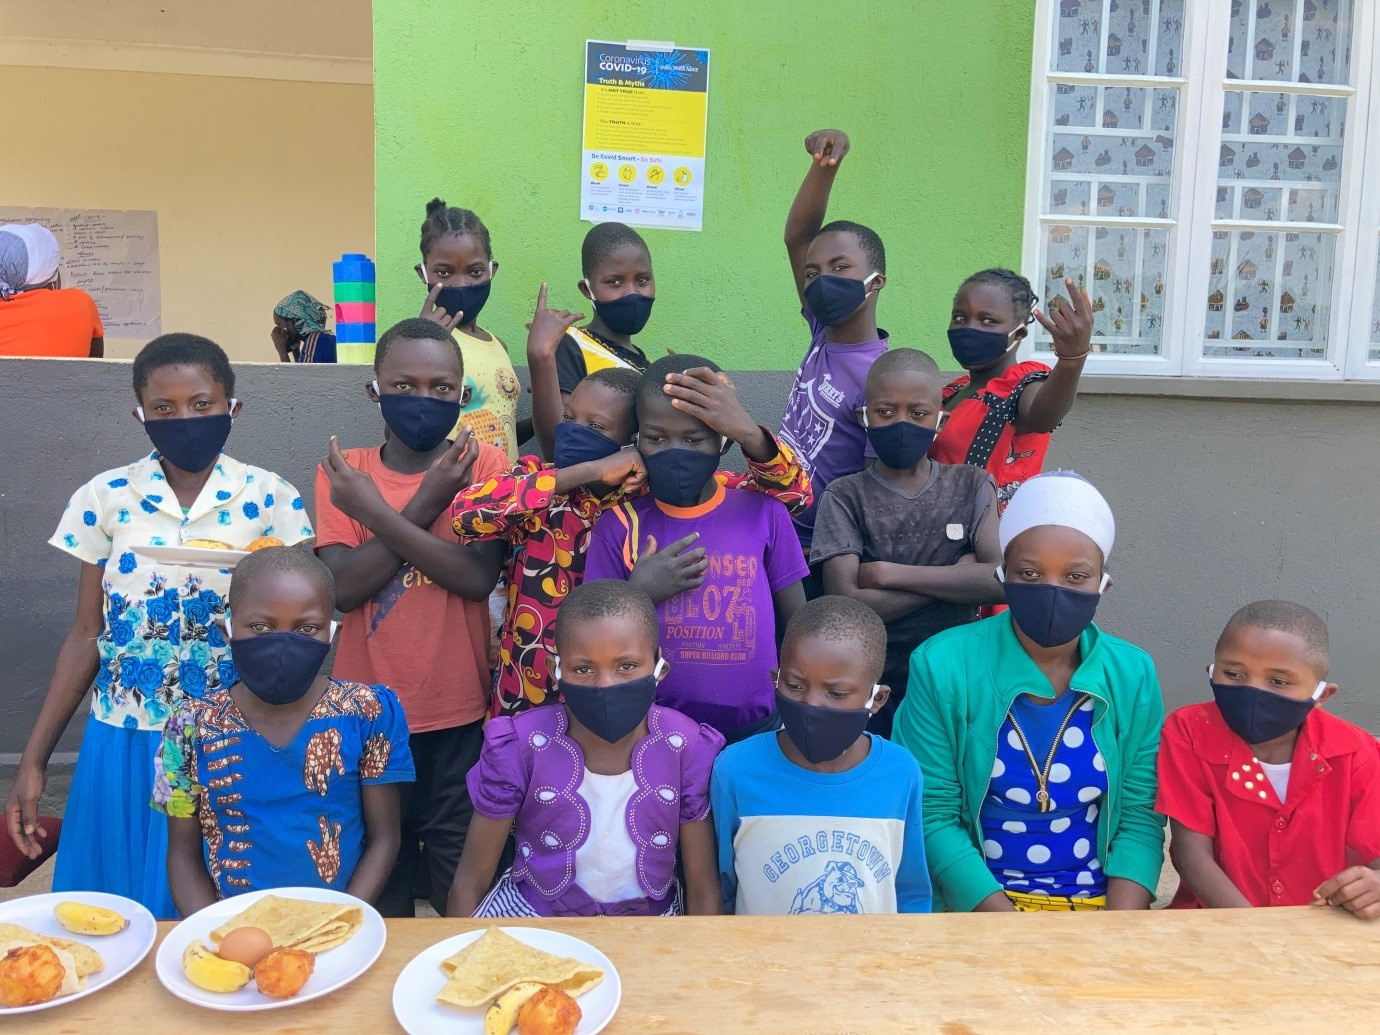 Children putting on masks donated by REFLECT Project during the dissemination exercise at Kyaka II, Kyegegwa district in South Western